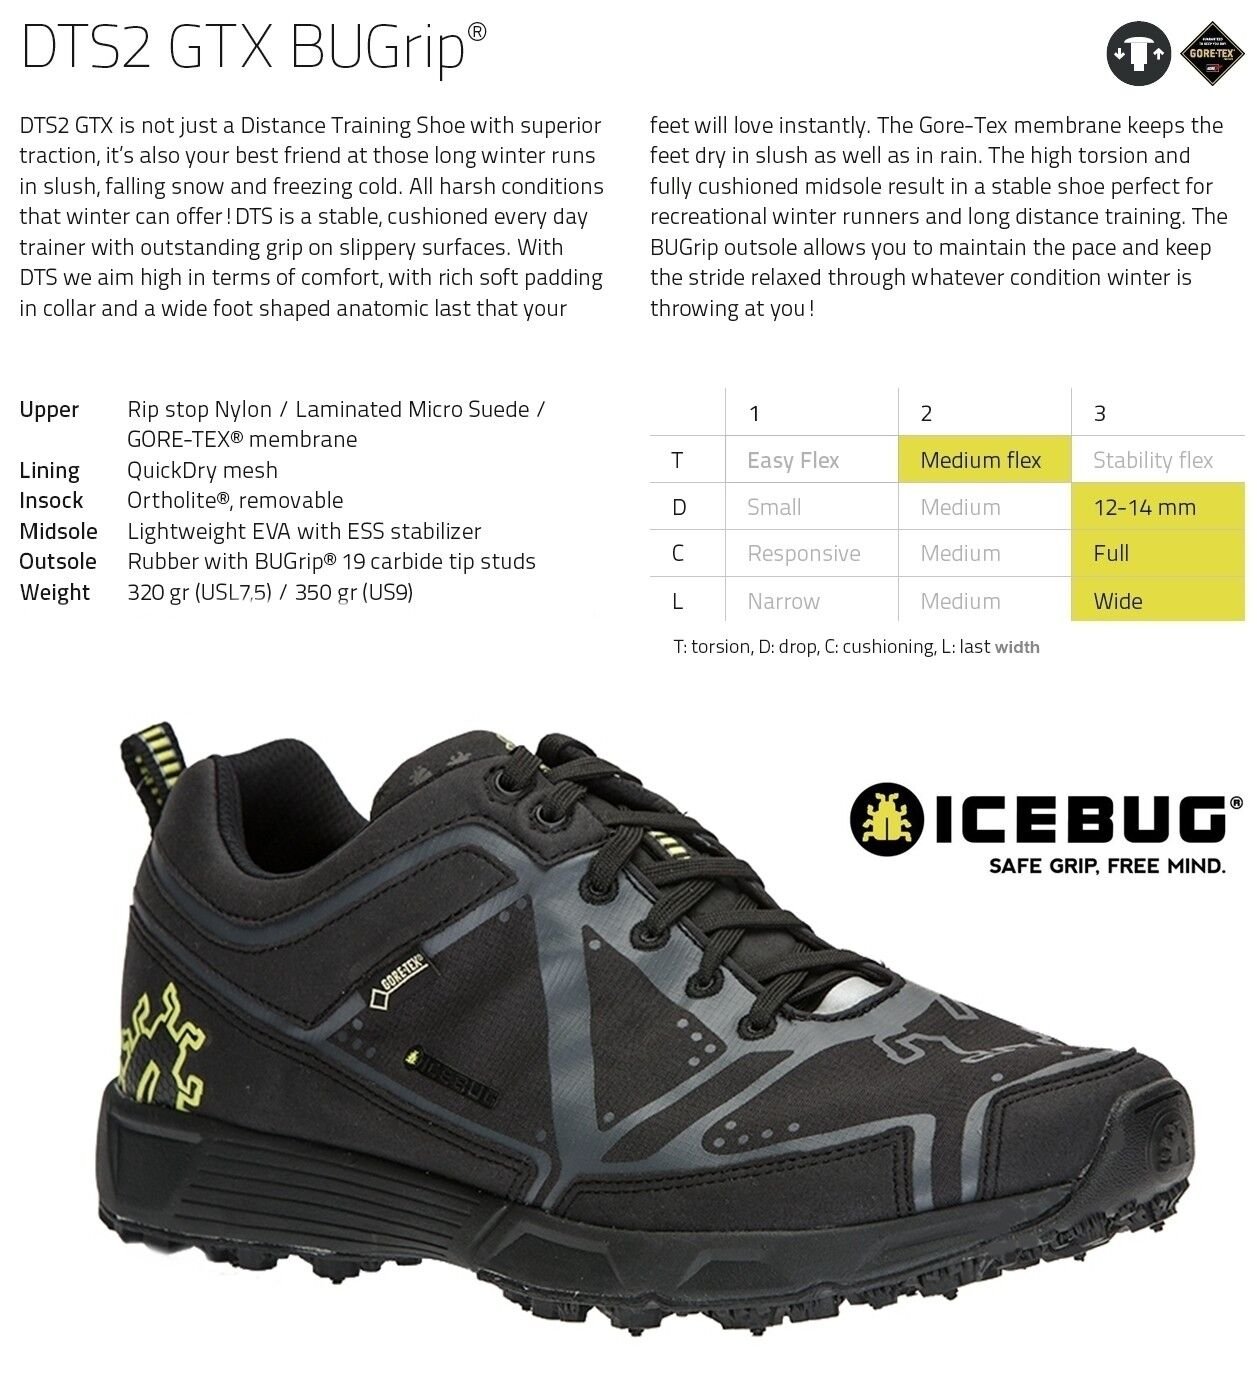 0d82dd299b895 NEW Icebug DTS2 GTX Goretex Mens Trail Running Winter Ice shoes 220 Womens  Msrp nnfcna1300-Men